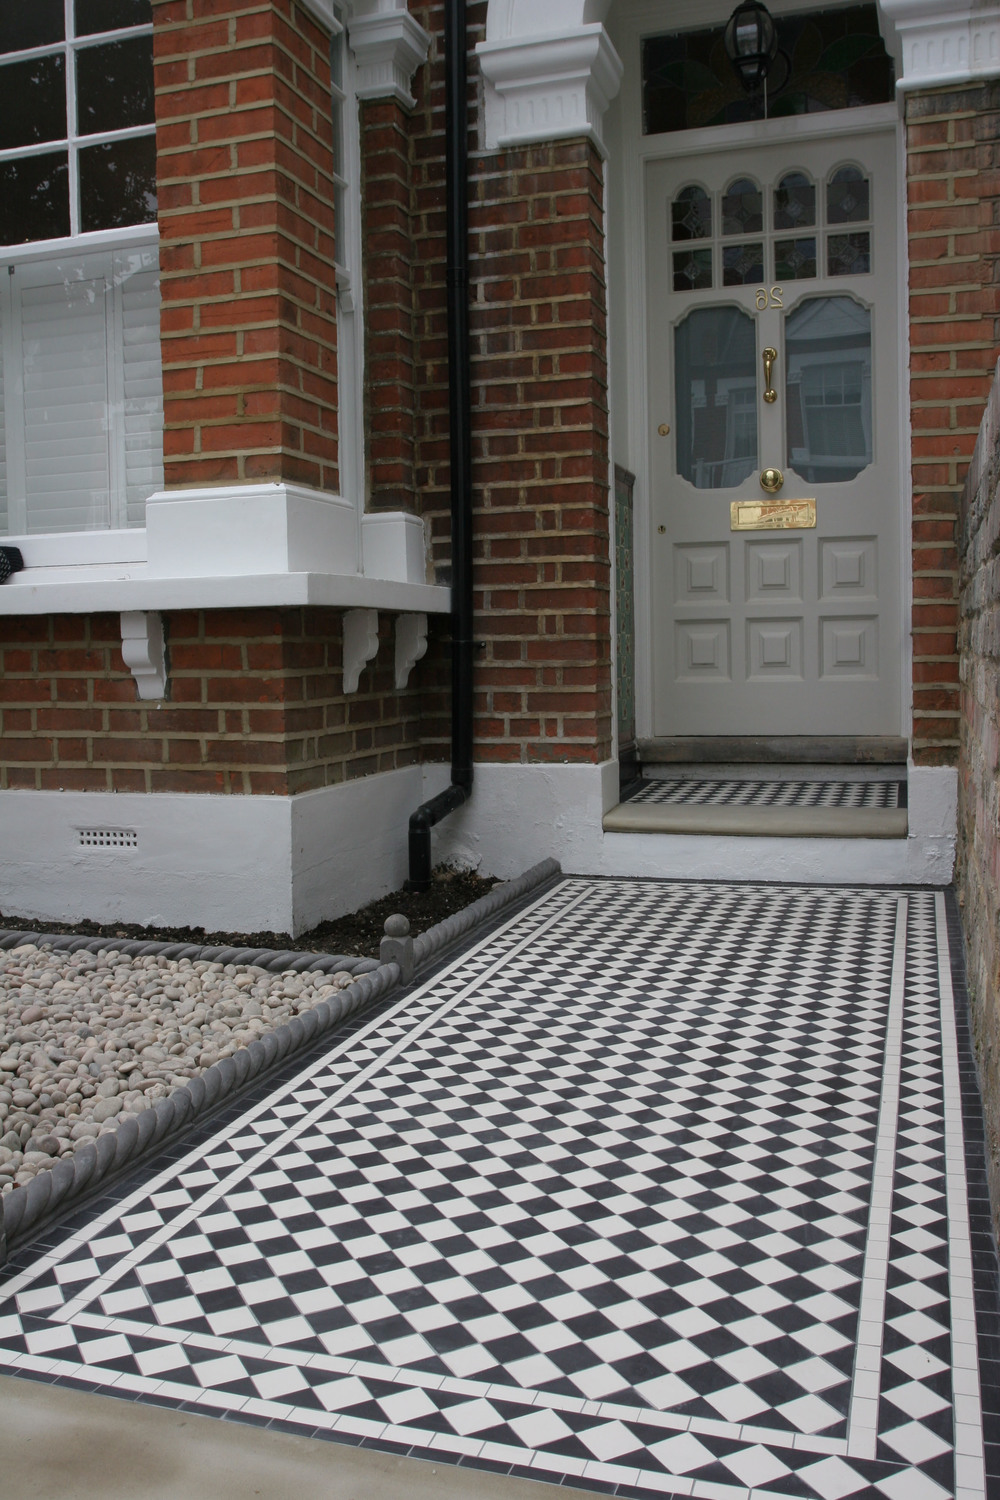 015 Black and White Chequer with White Diamond Border